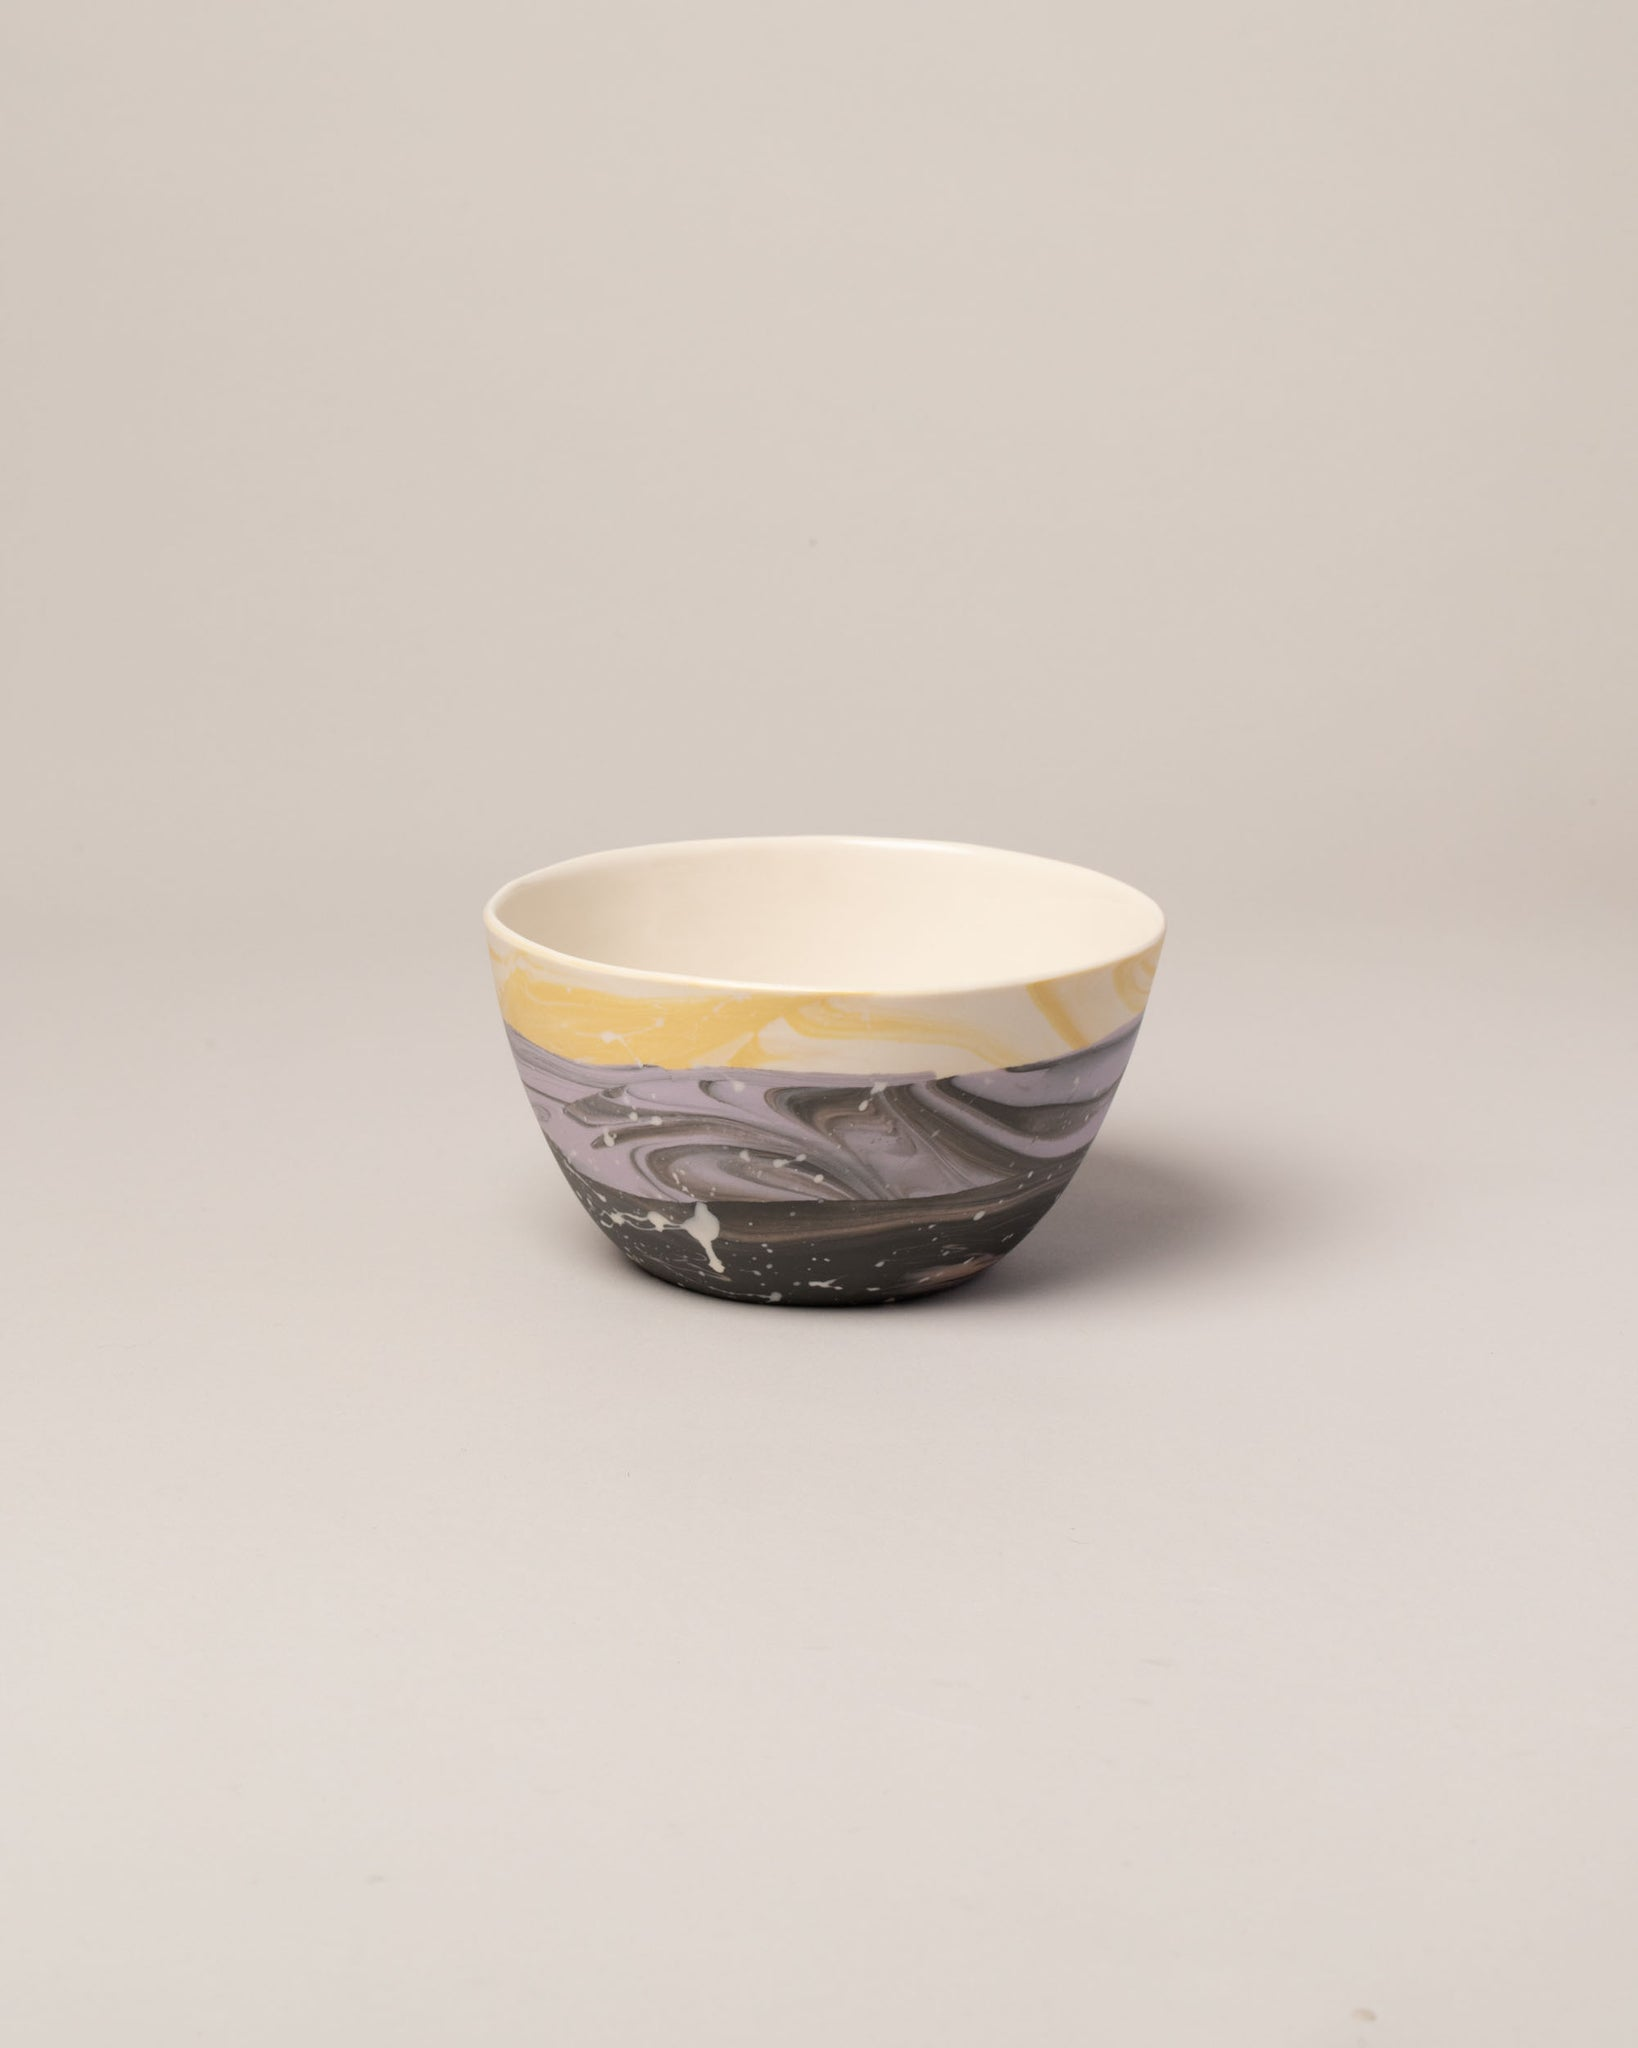 Stellar bowl in lavender and yellow